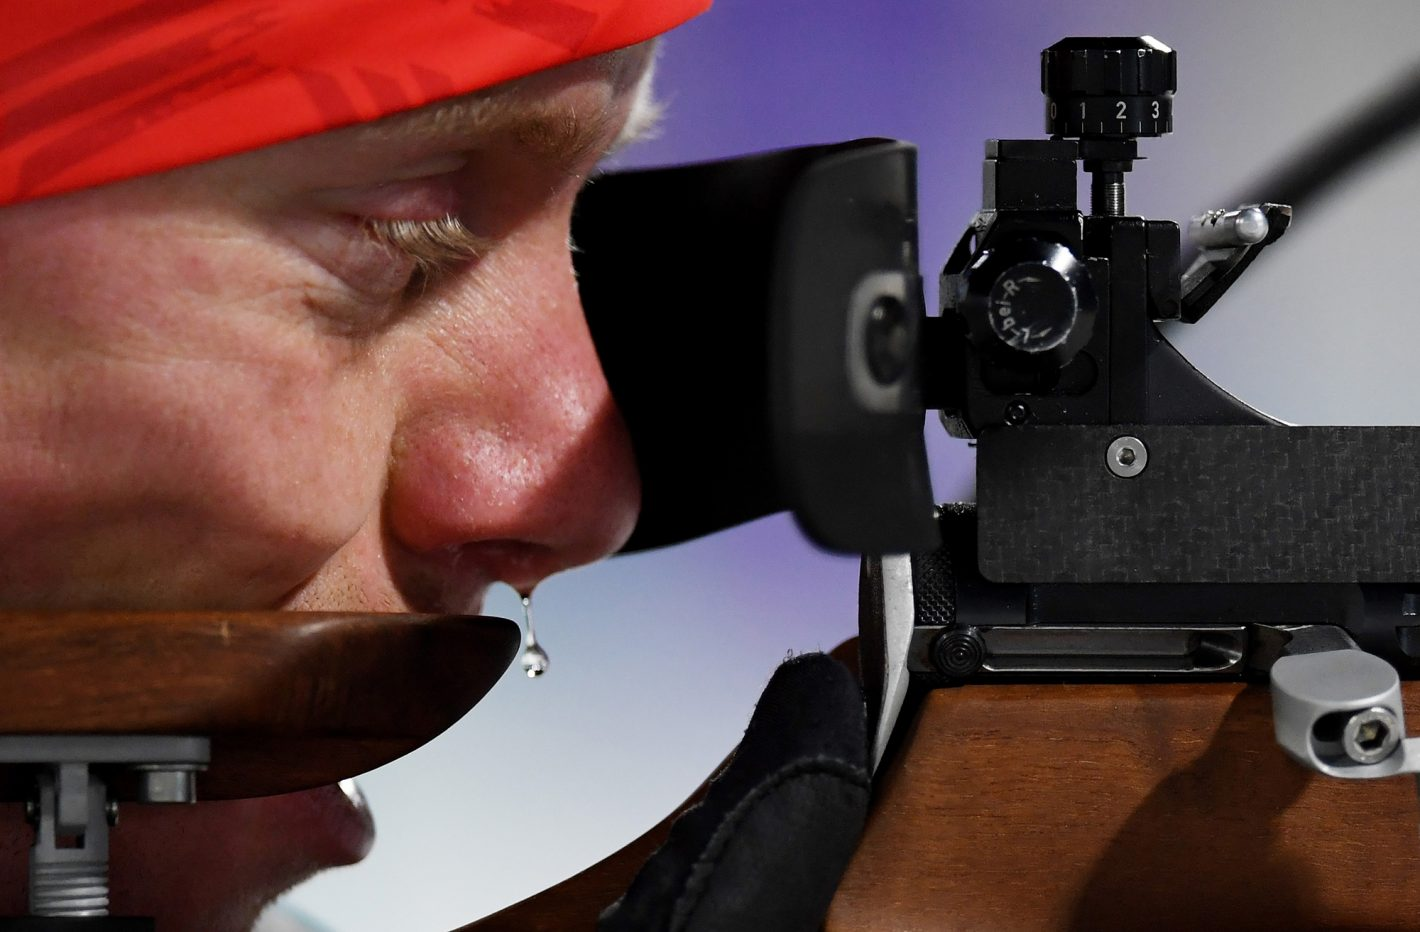 Biathlete Roman Rees of Germany trains ahead of the PyeongChang 2018 Winter Olympic Games at Alpensia Biathlon Centre on February 8, 2018 in Pyeongchang-gun, South Korea Nikon D5 | AF-S NIKKOR 400mm f/2.8E FL ED VR| ISO 2500 | 1/2500 | F2.8 Photo by Matthias Hangst/Getty Images